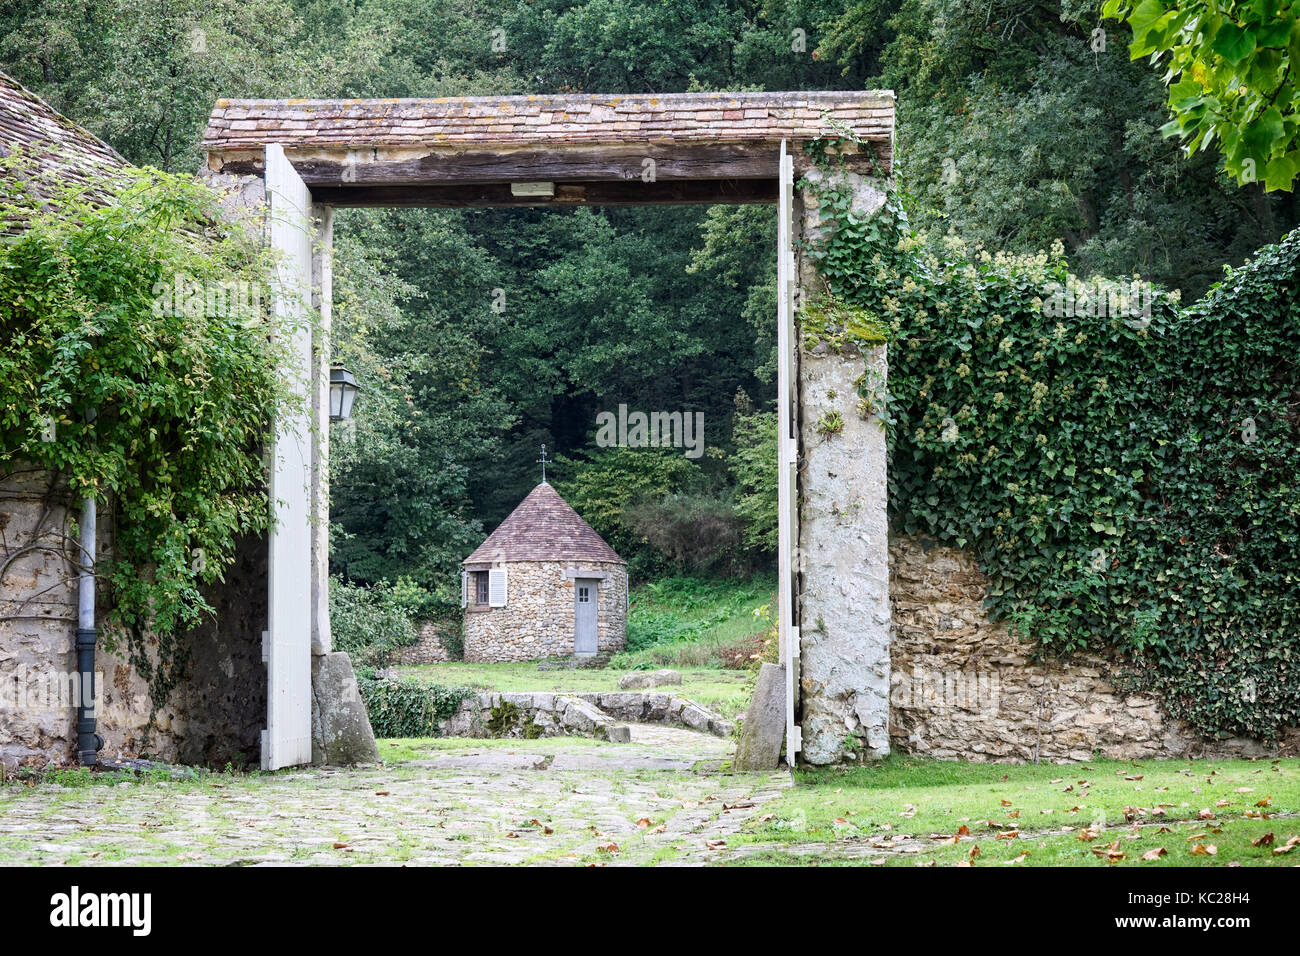 Moulin de la Tuilerie: country retreat & home of the Duke & Duchess of Windsor - through the gate the changing - Stock Image